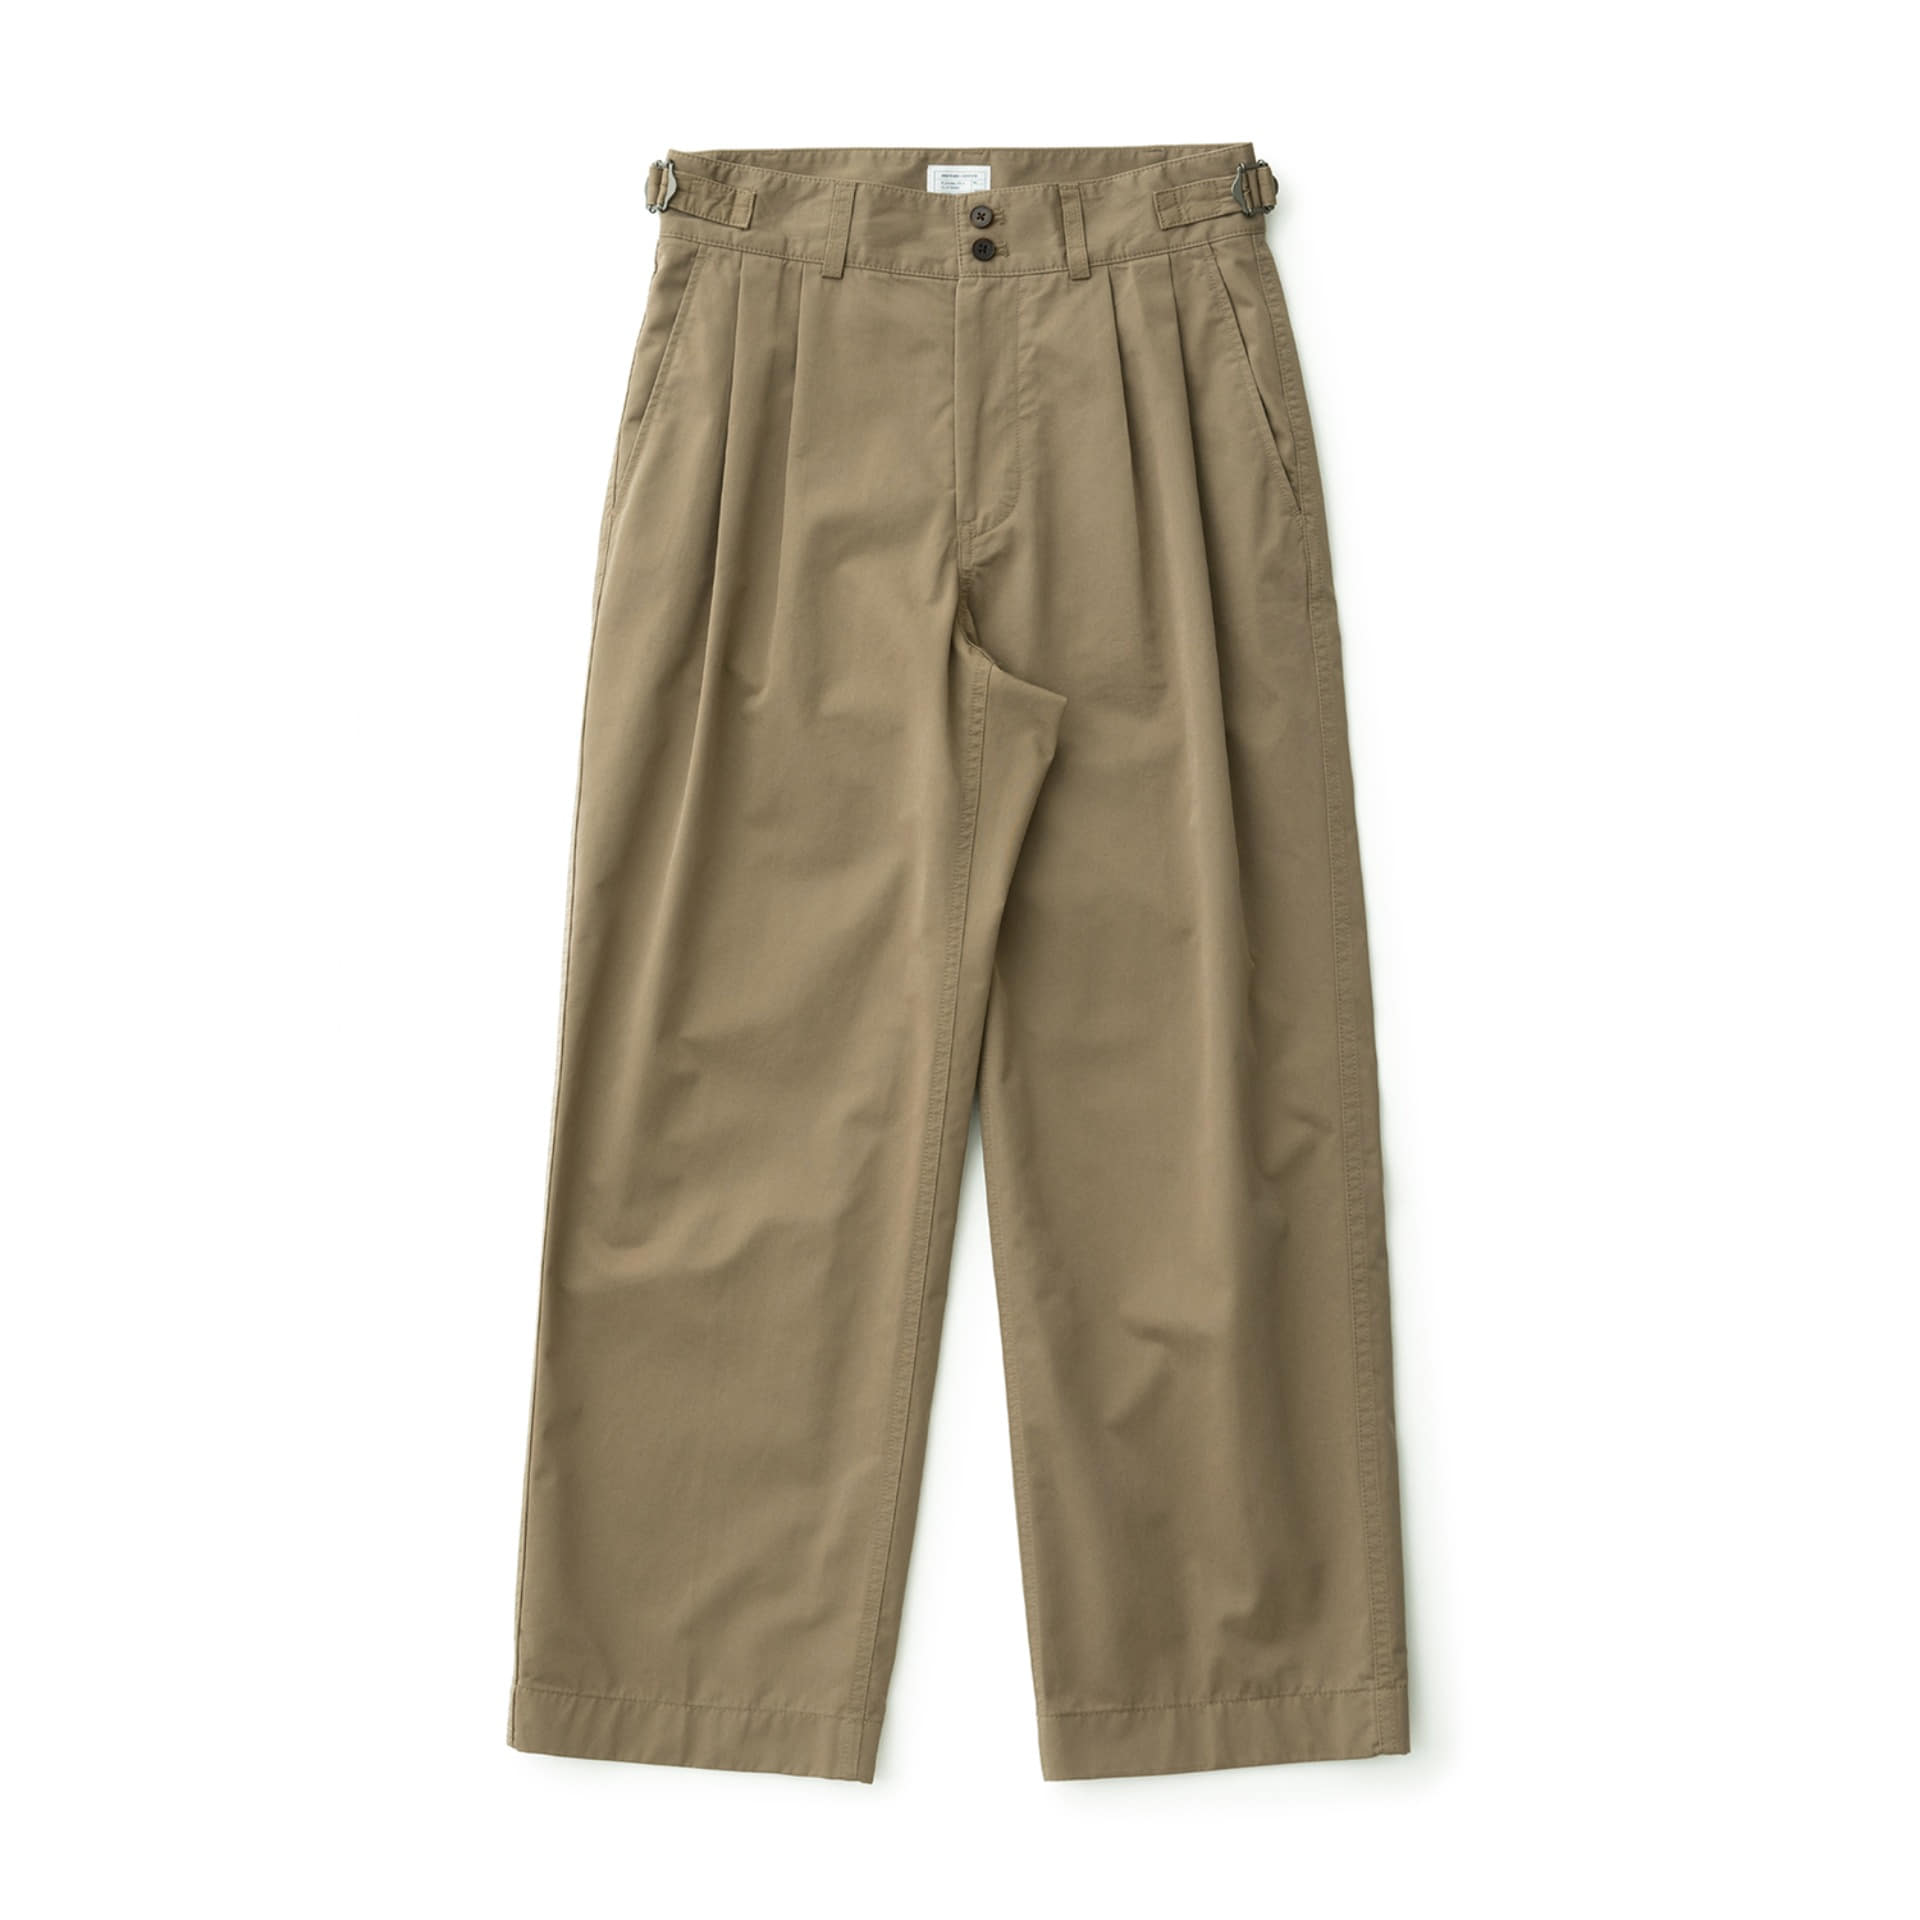 A/O 21SS SANTIAGO PANTS (Officer Khaki)